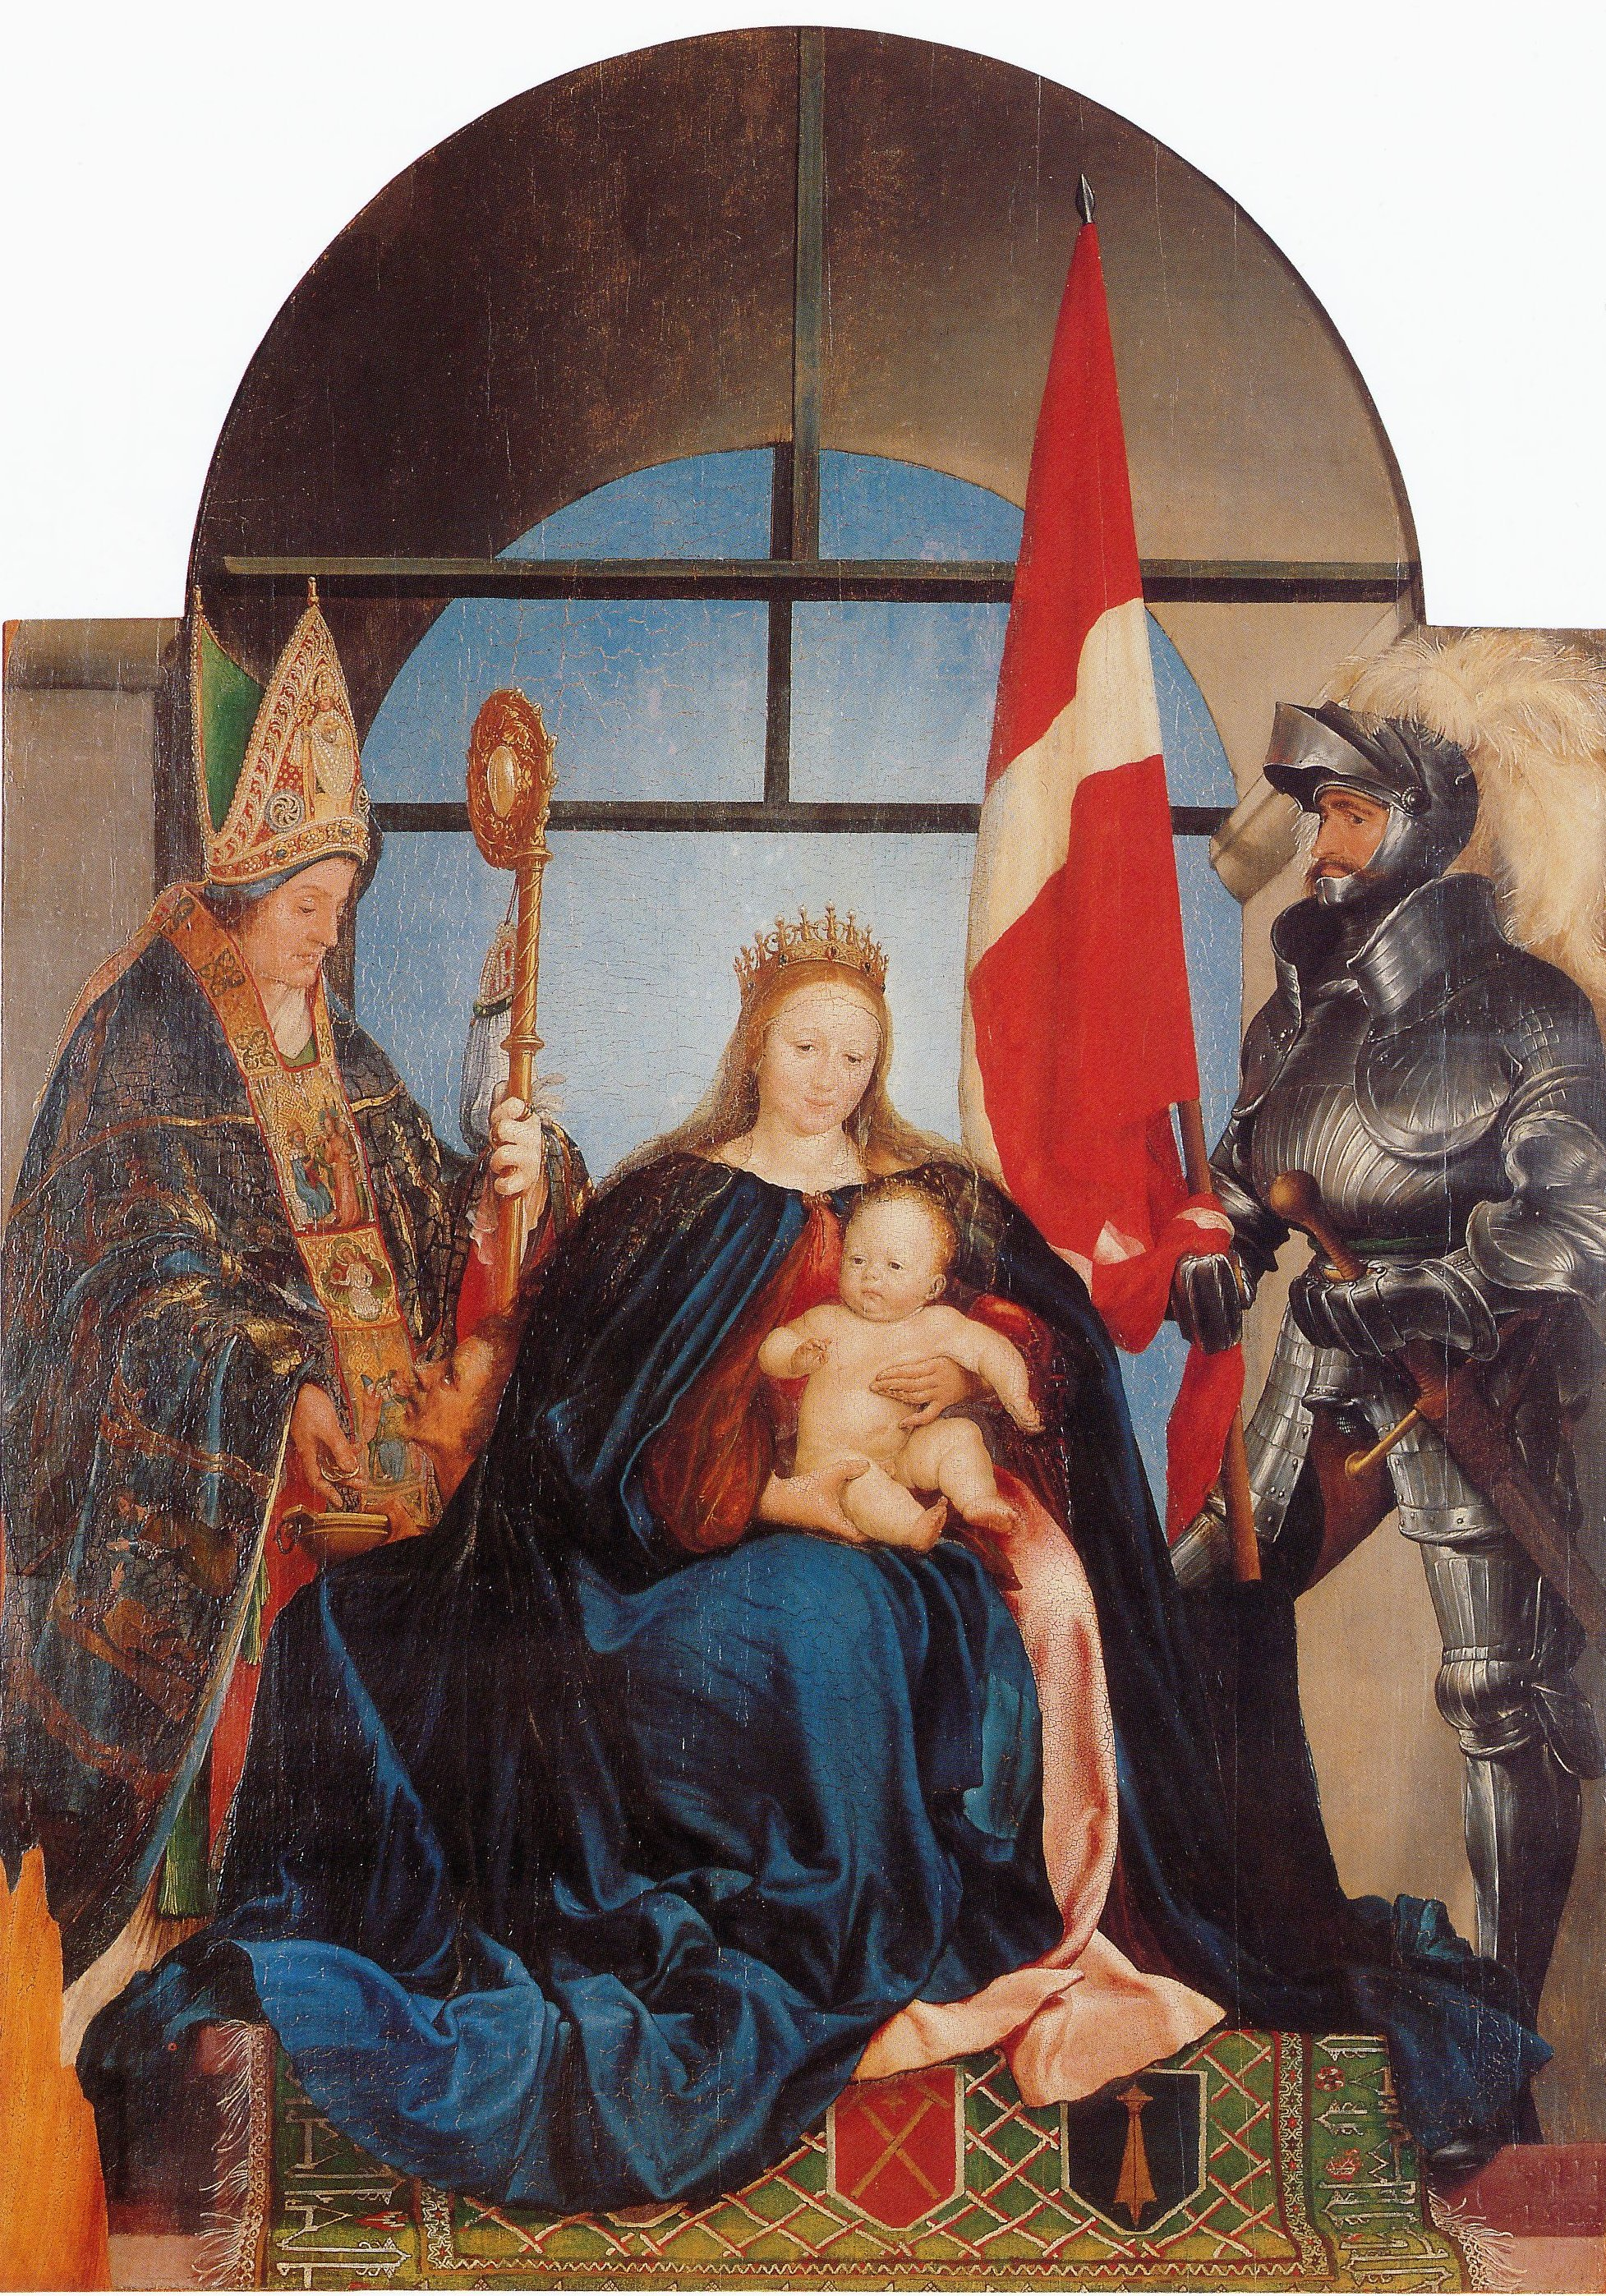 The Solothurn Madonna. 1522